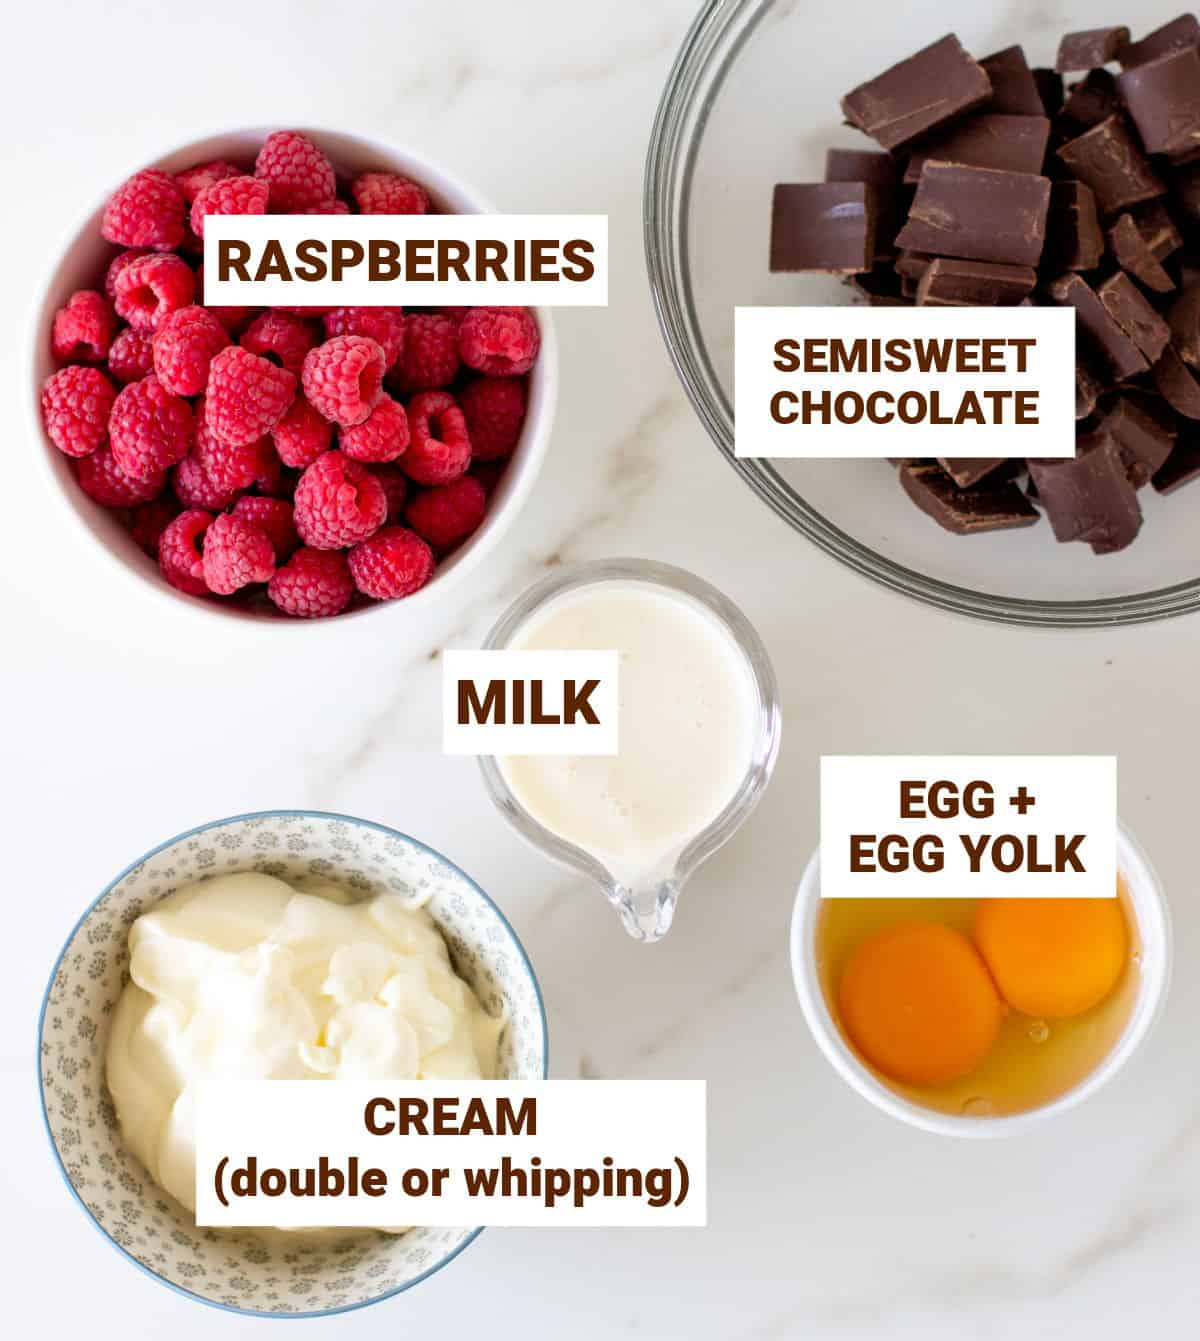 Raspberries, chocolate eggs and cream in bowls on white surface